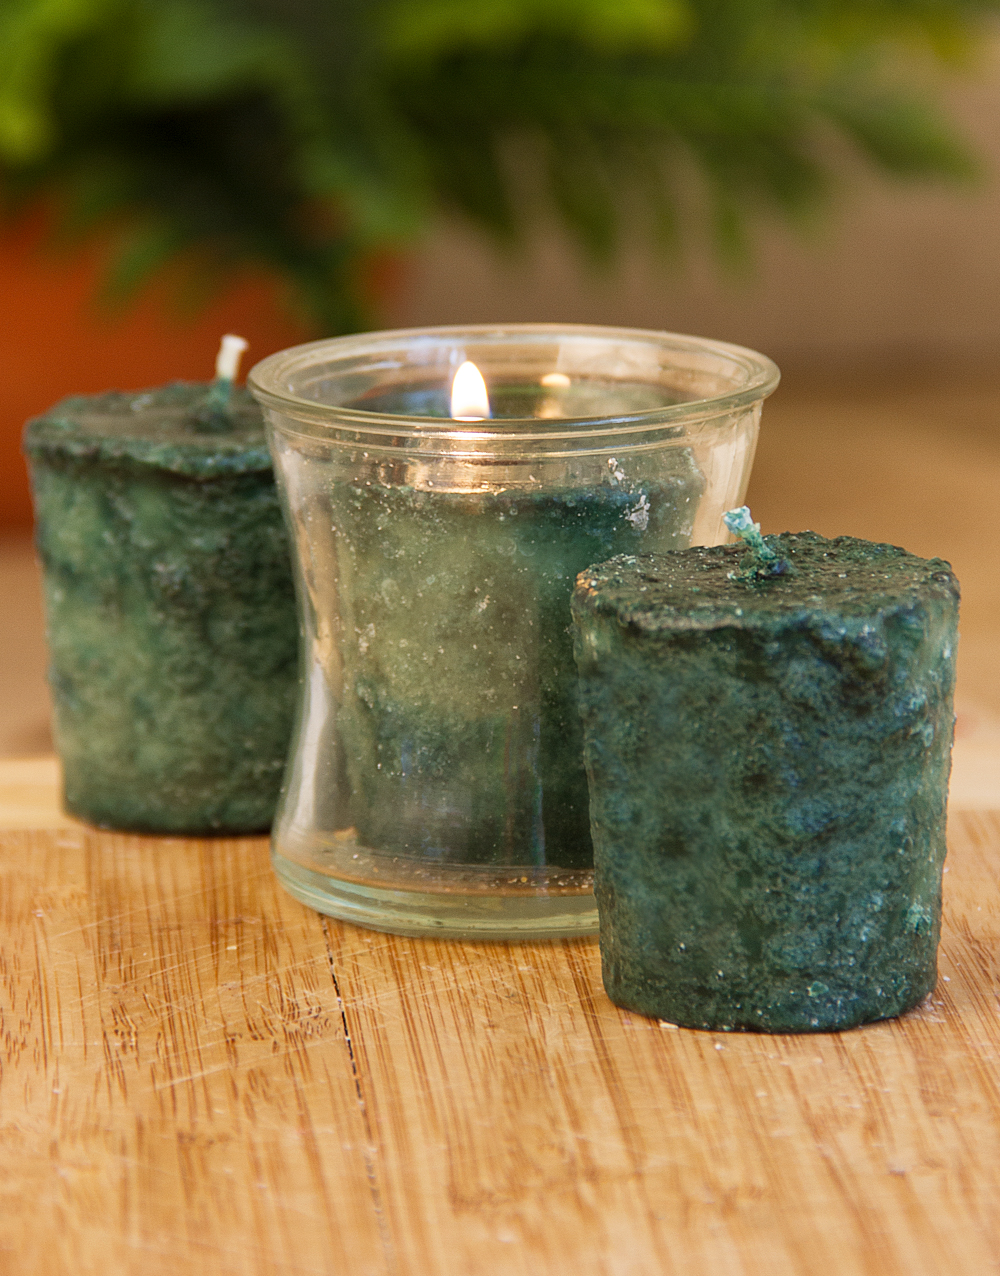 Northern Pine 3 Pack Votive Candles